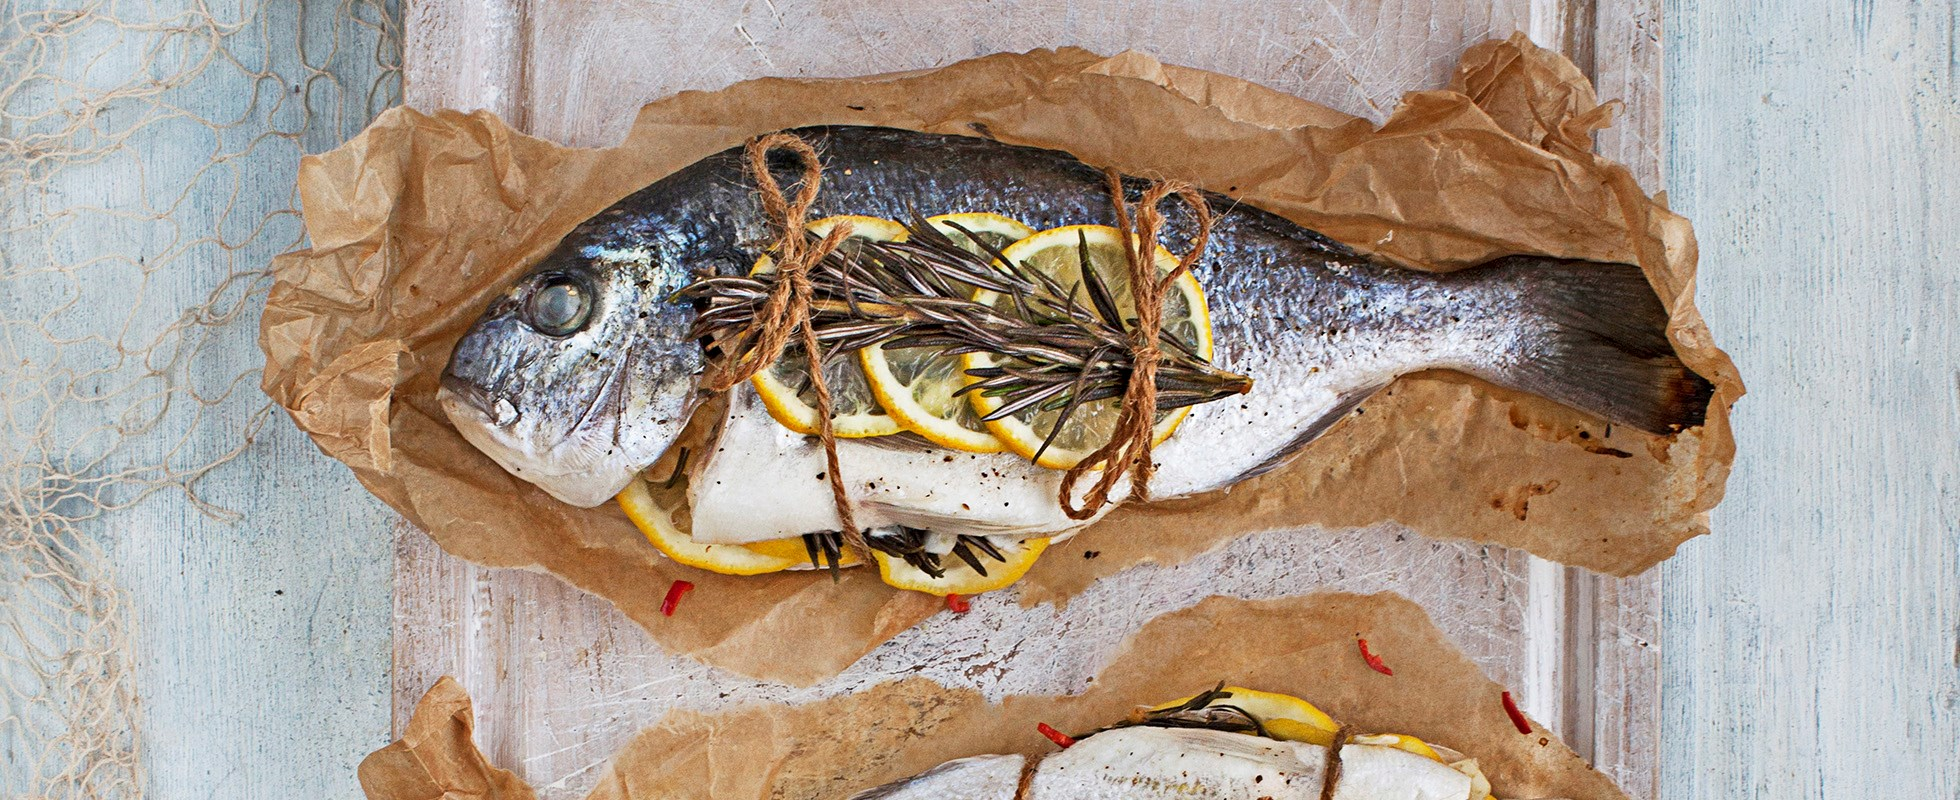 Whole sea bream cooked en papillote